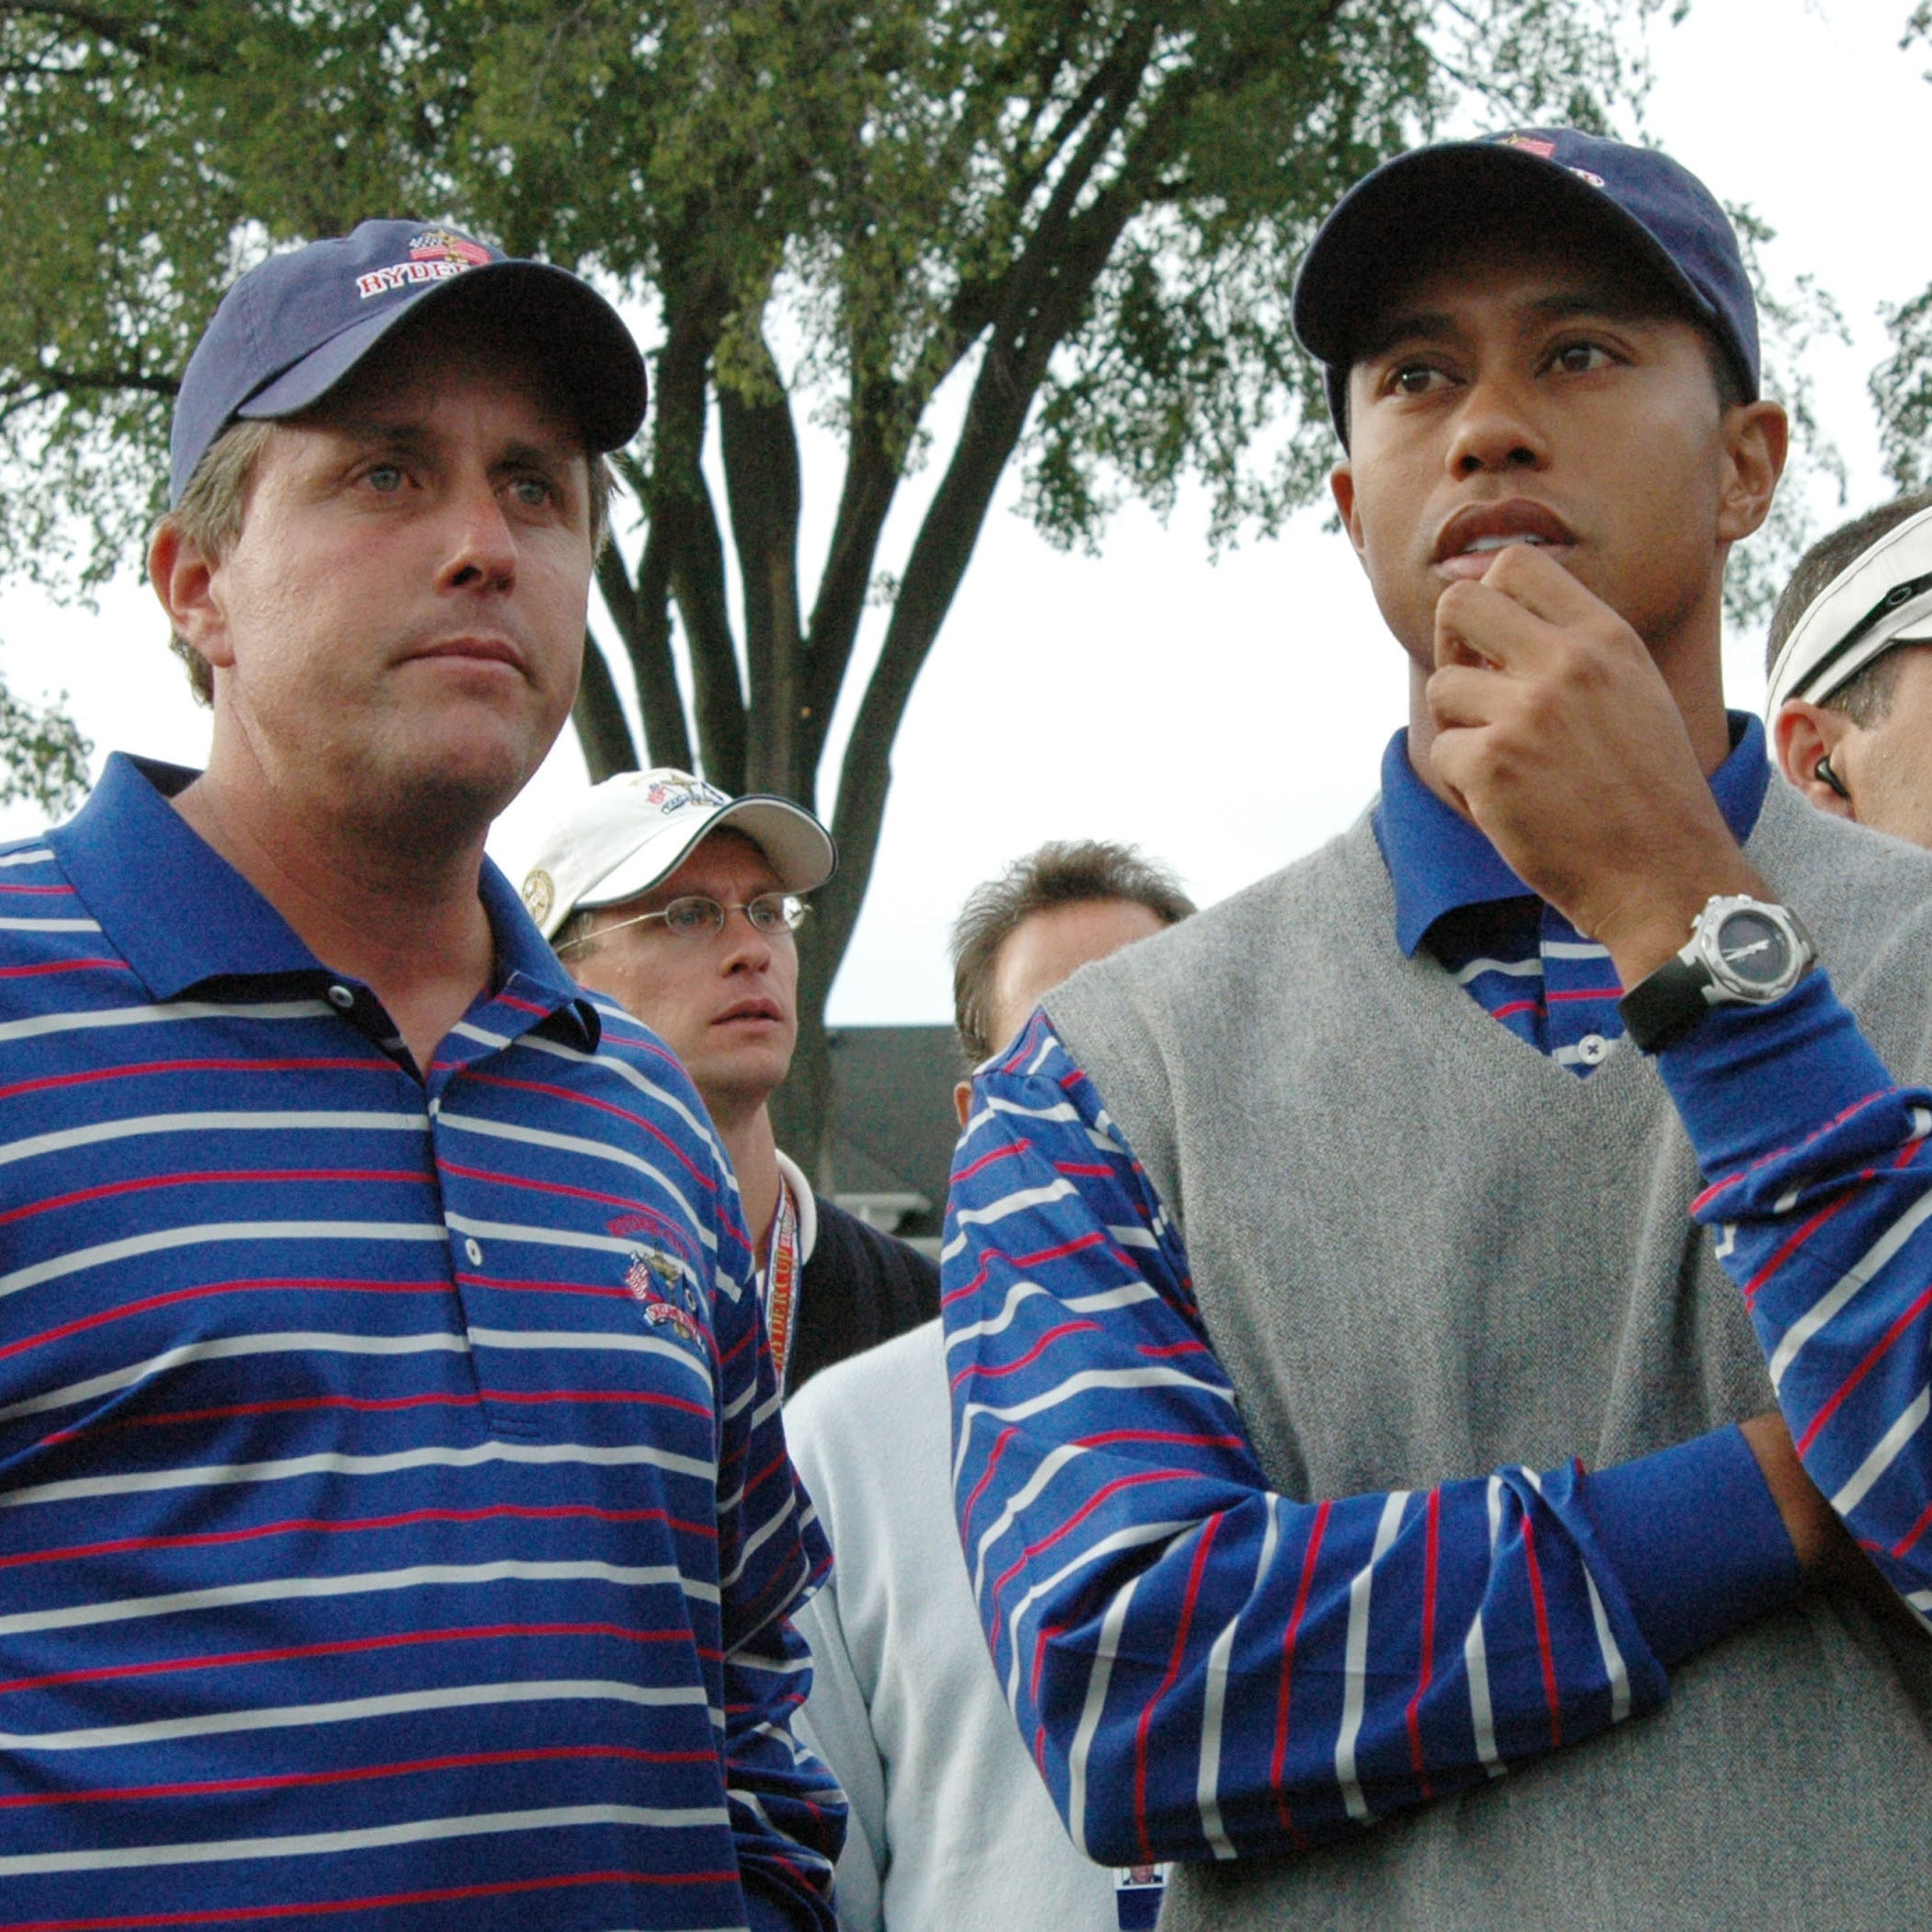 Shades of Oakland Hills? Phil Mickelson would welcome Ryder Cup pairing with Tiger Woods